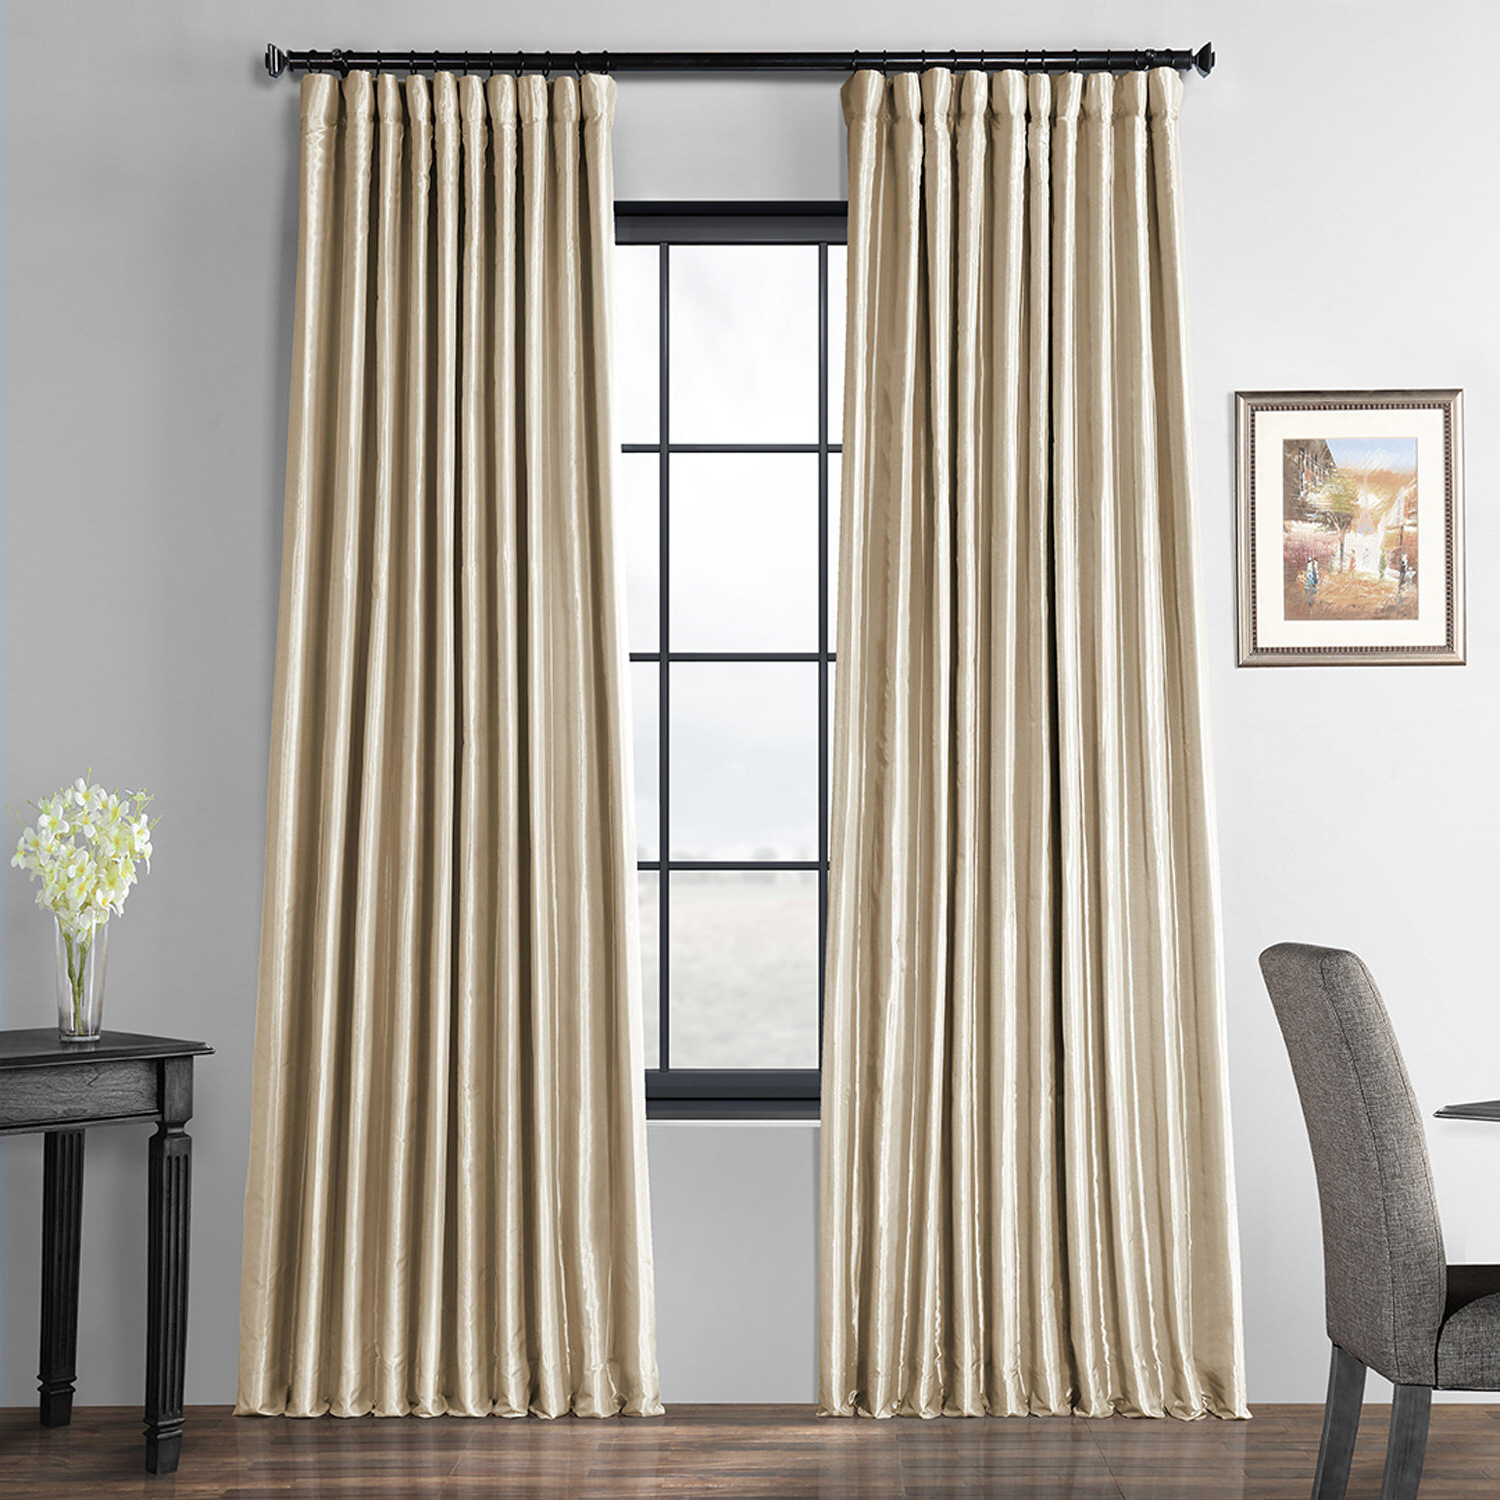 2020 Faux Silk Extra Wide Taffeta Blackout Single Curtain Panel In Faux Silk Extra Wide Blackout Single Curtain Panels (View 5 of 20)